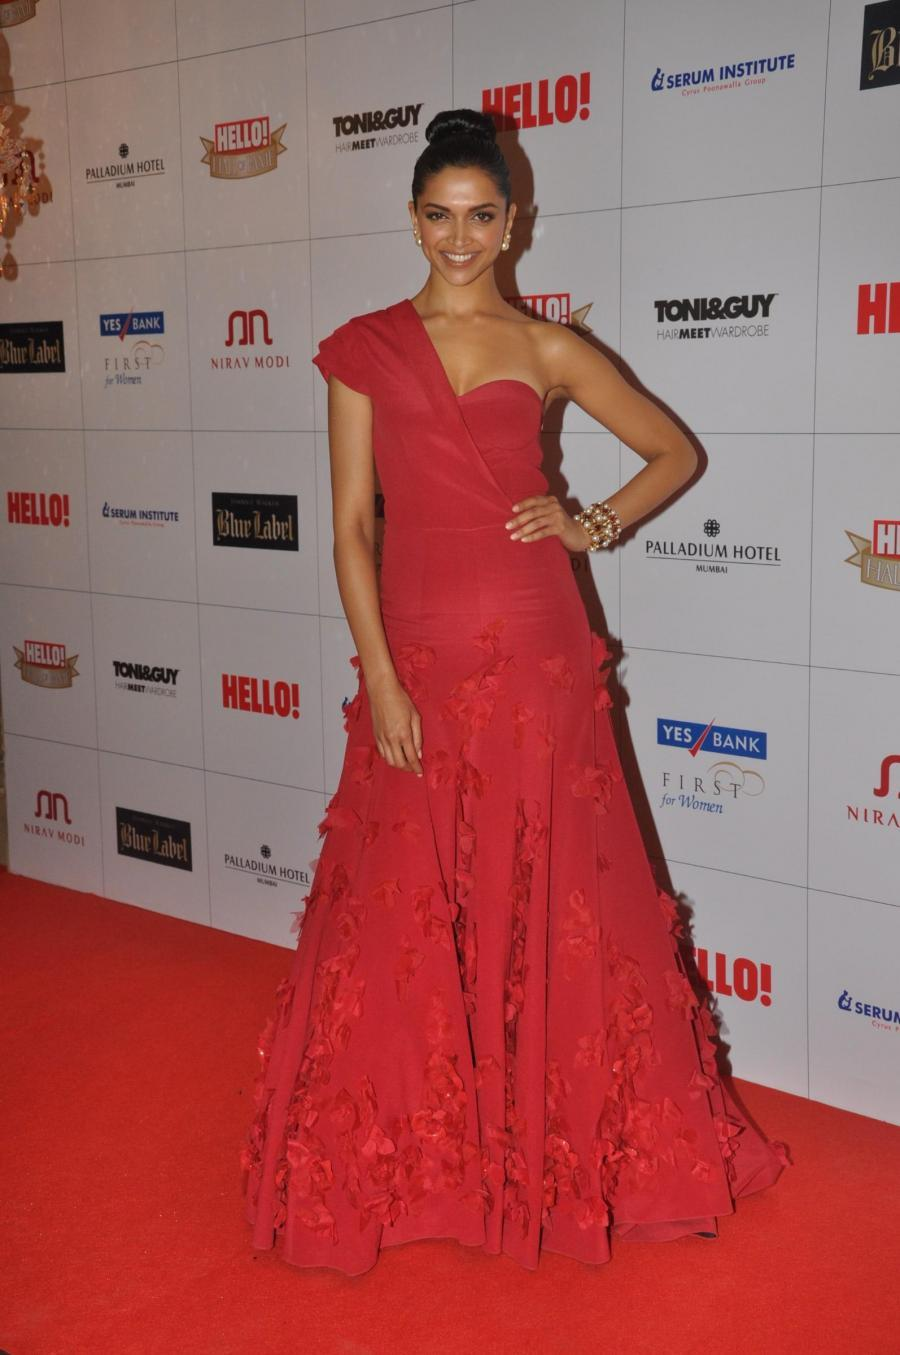 Deepika Padukone In Red Gown At Fame Award